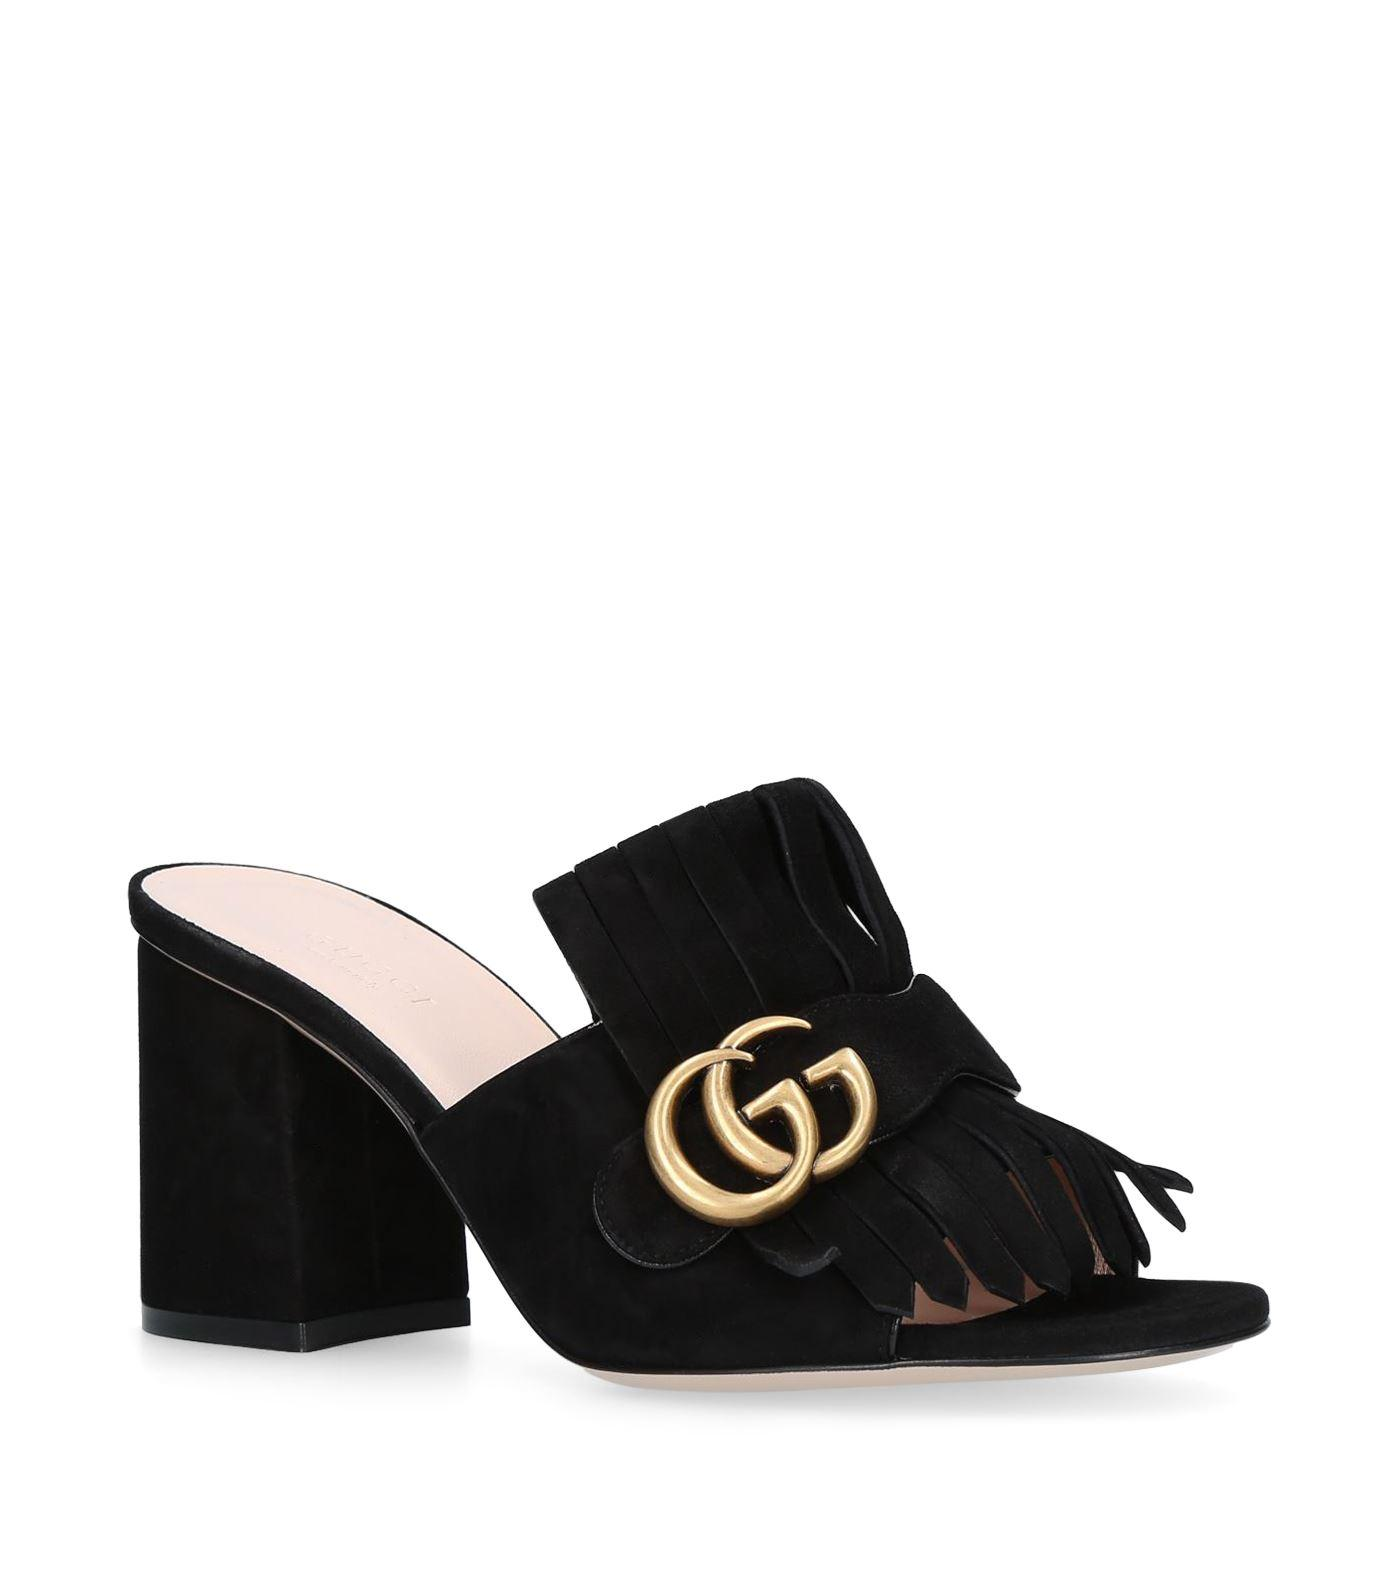 aa53fd117951 Gucci Marmont 75 Suede Mules in Black - Save 17% - Lyst